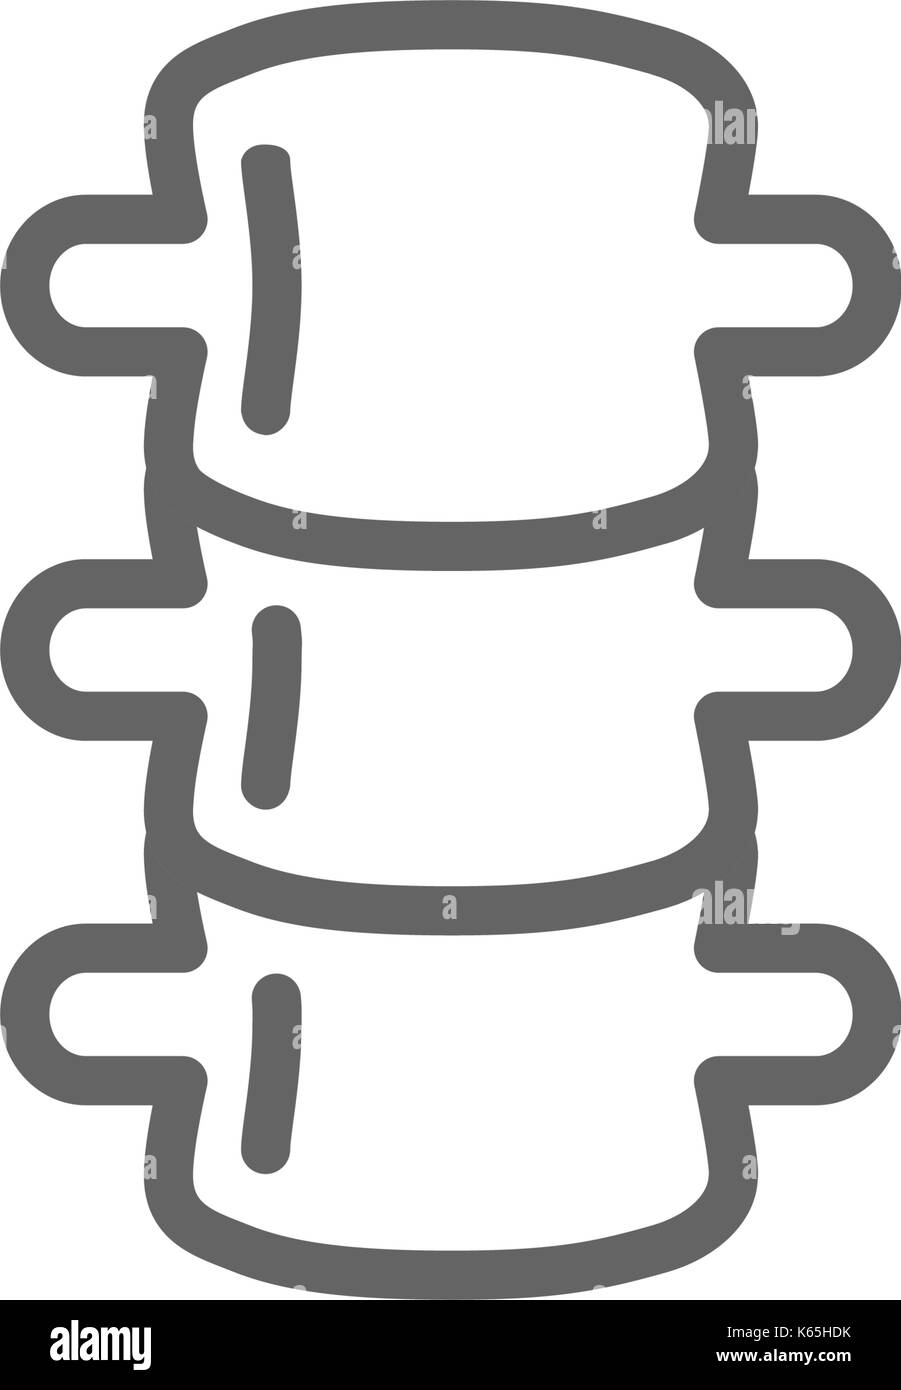 Simple backbone line icon. Symbol and sign vector illustration design. Editable Stroke. Isolated on white background - Stock Image